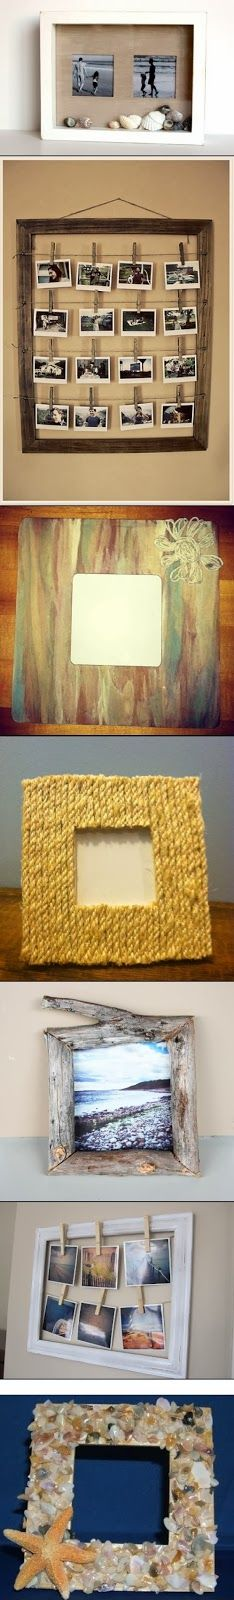 Beach-Inspired DIY Photo Frames